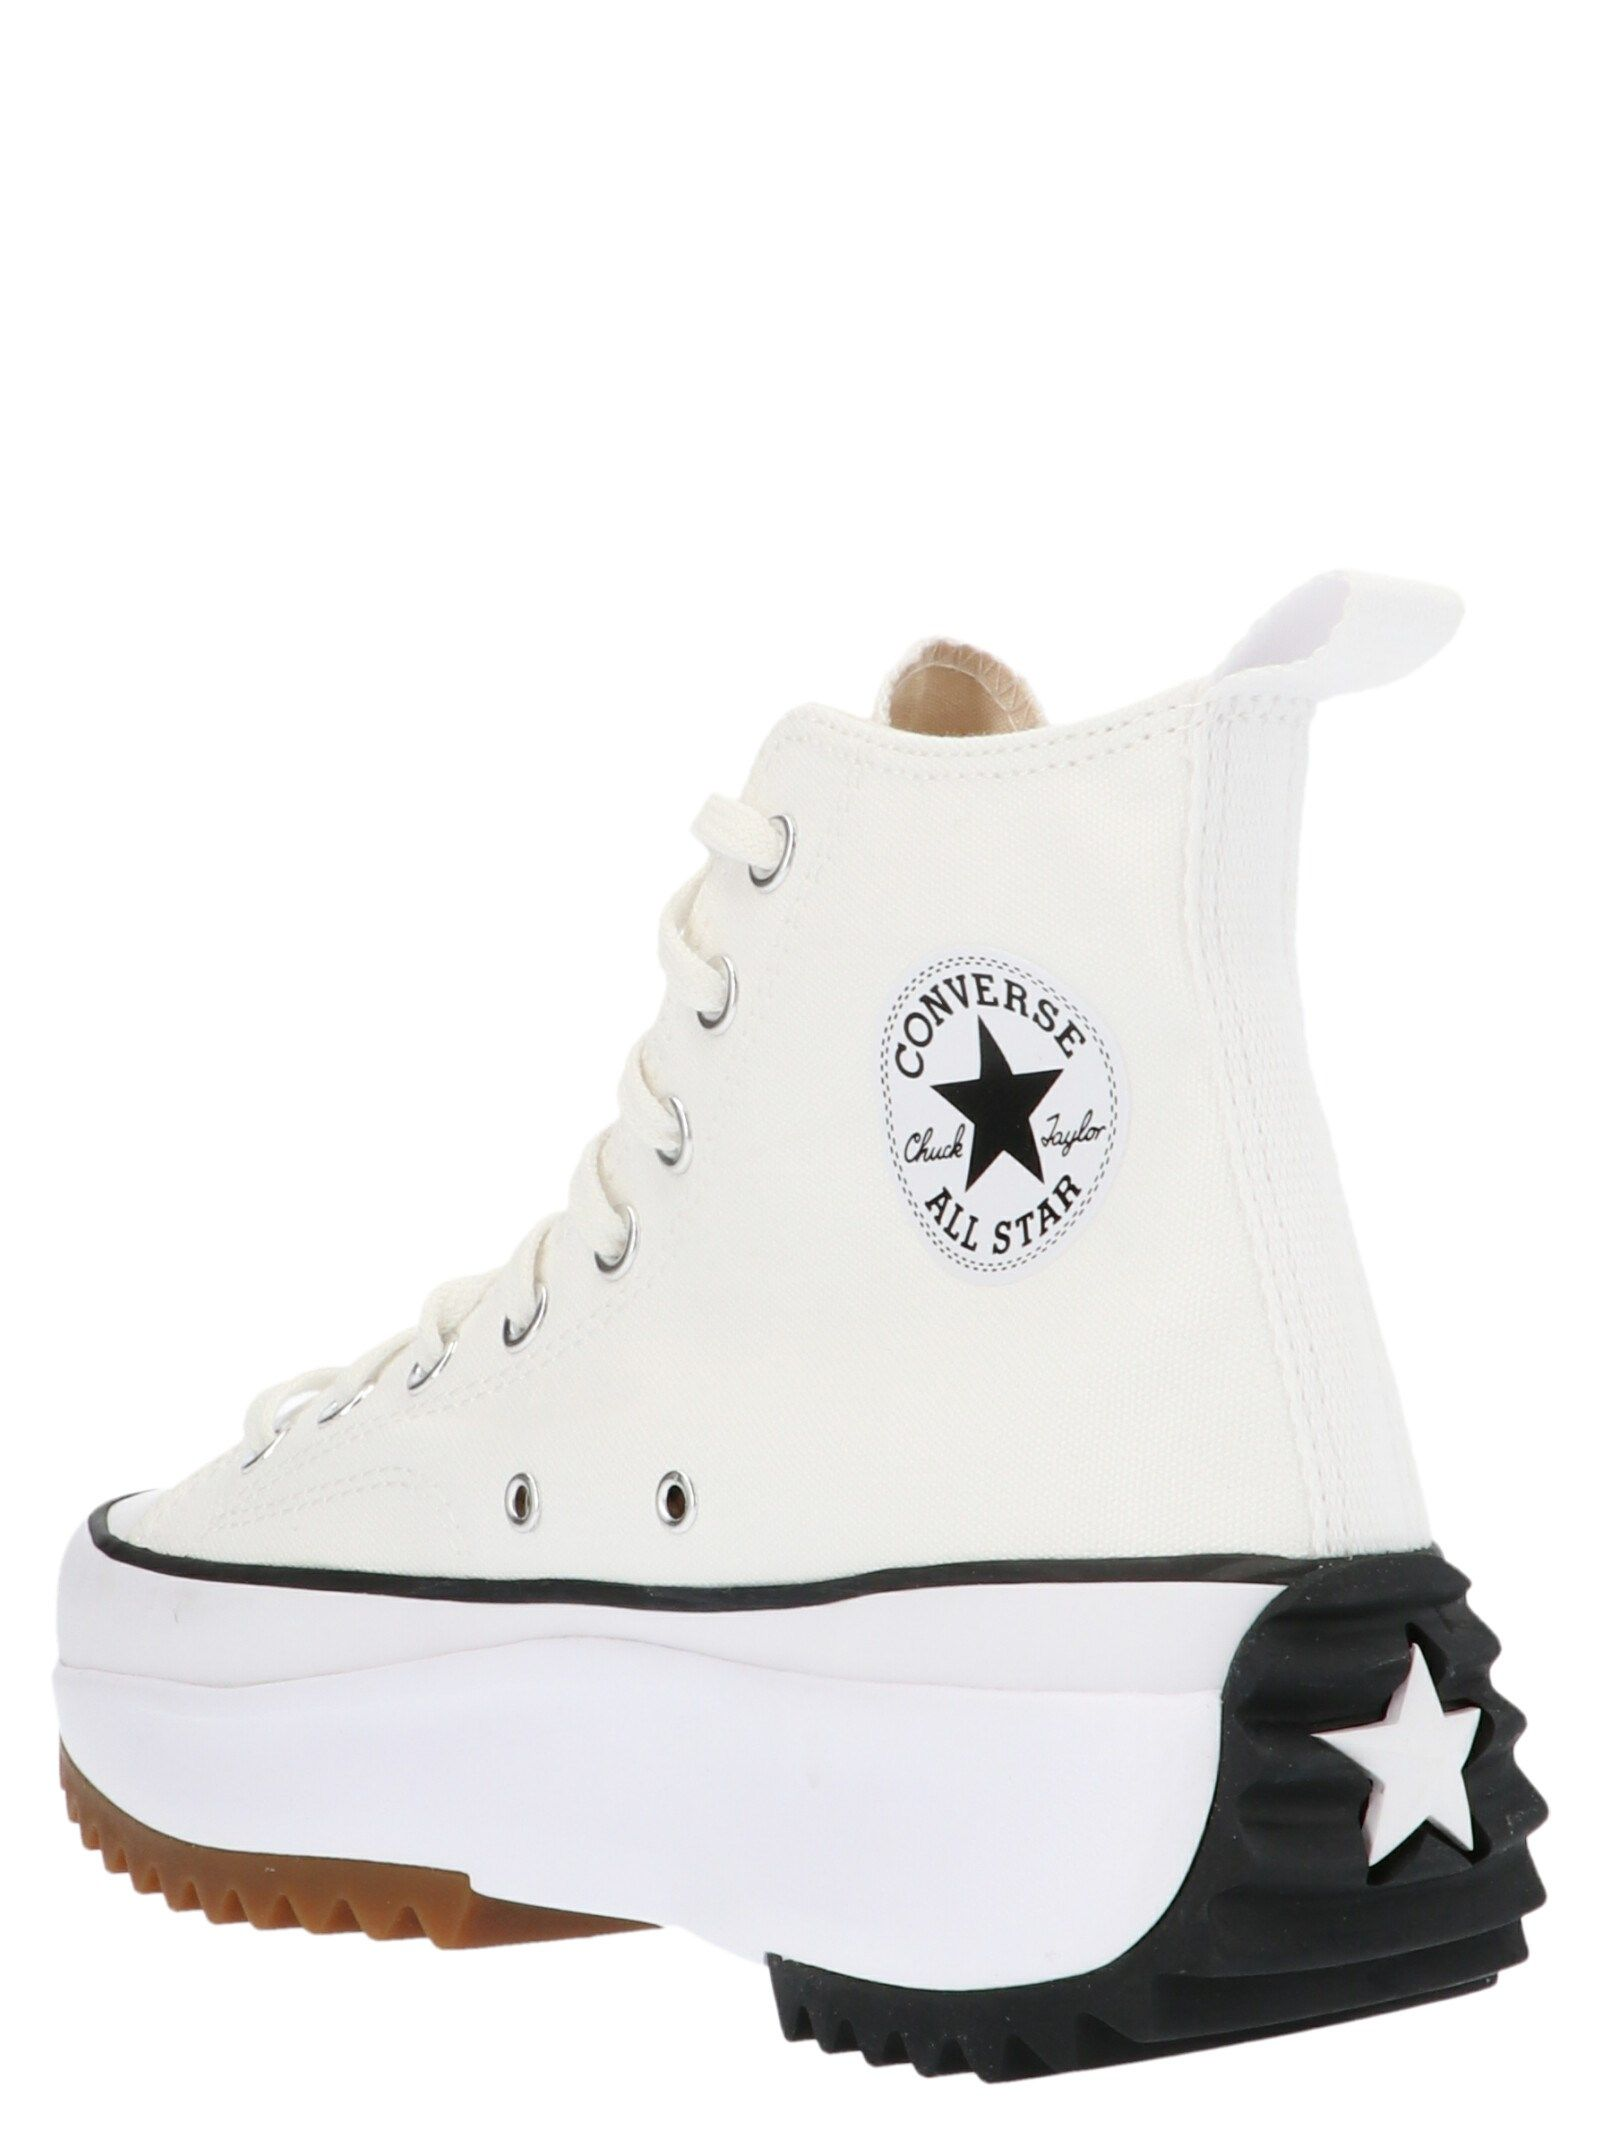 CONVERSE Mid heels CONVERSE WOMEN'S WHITE FABRIC HI TOP SNEAKERS